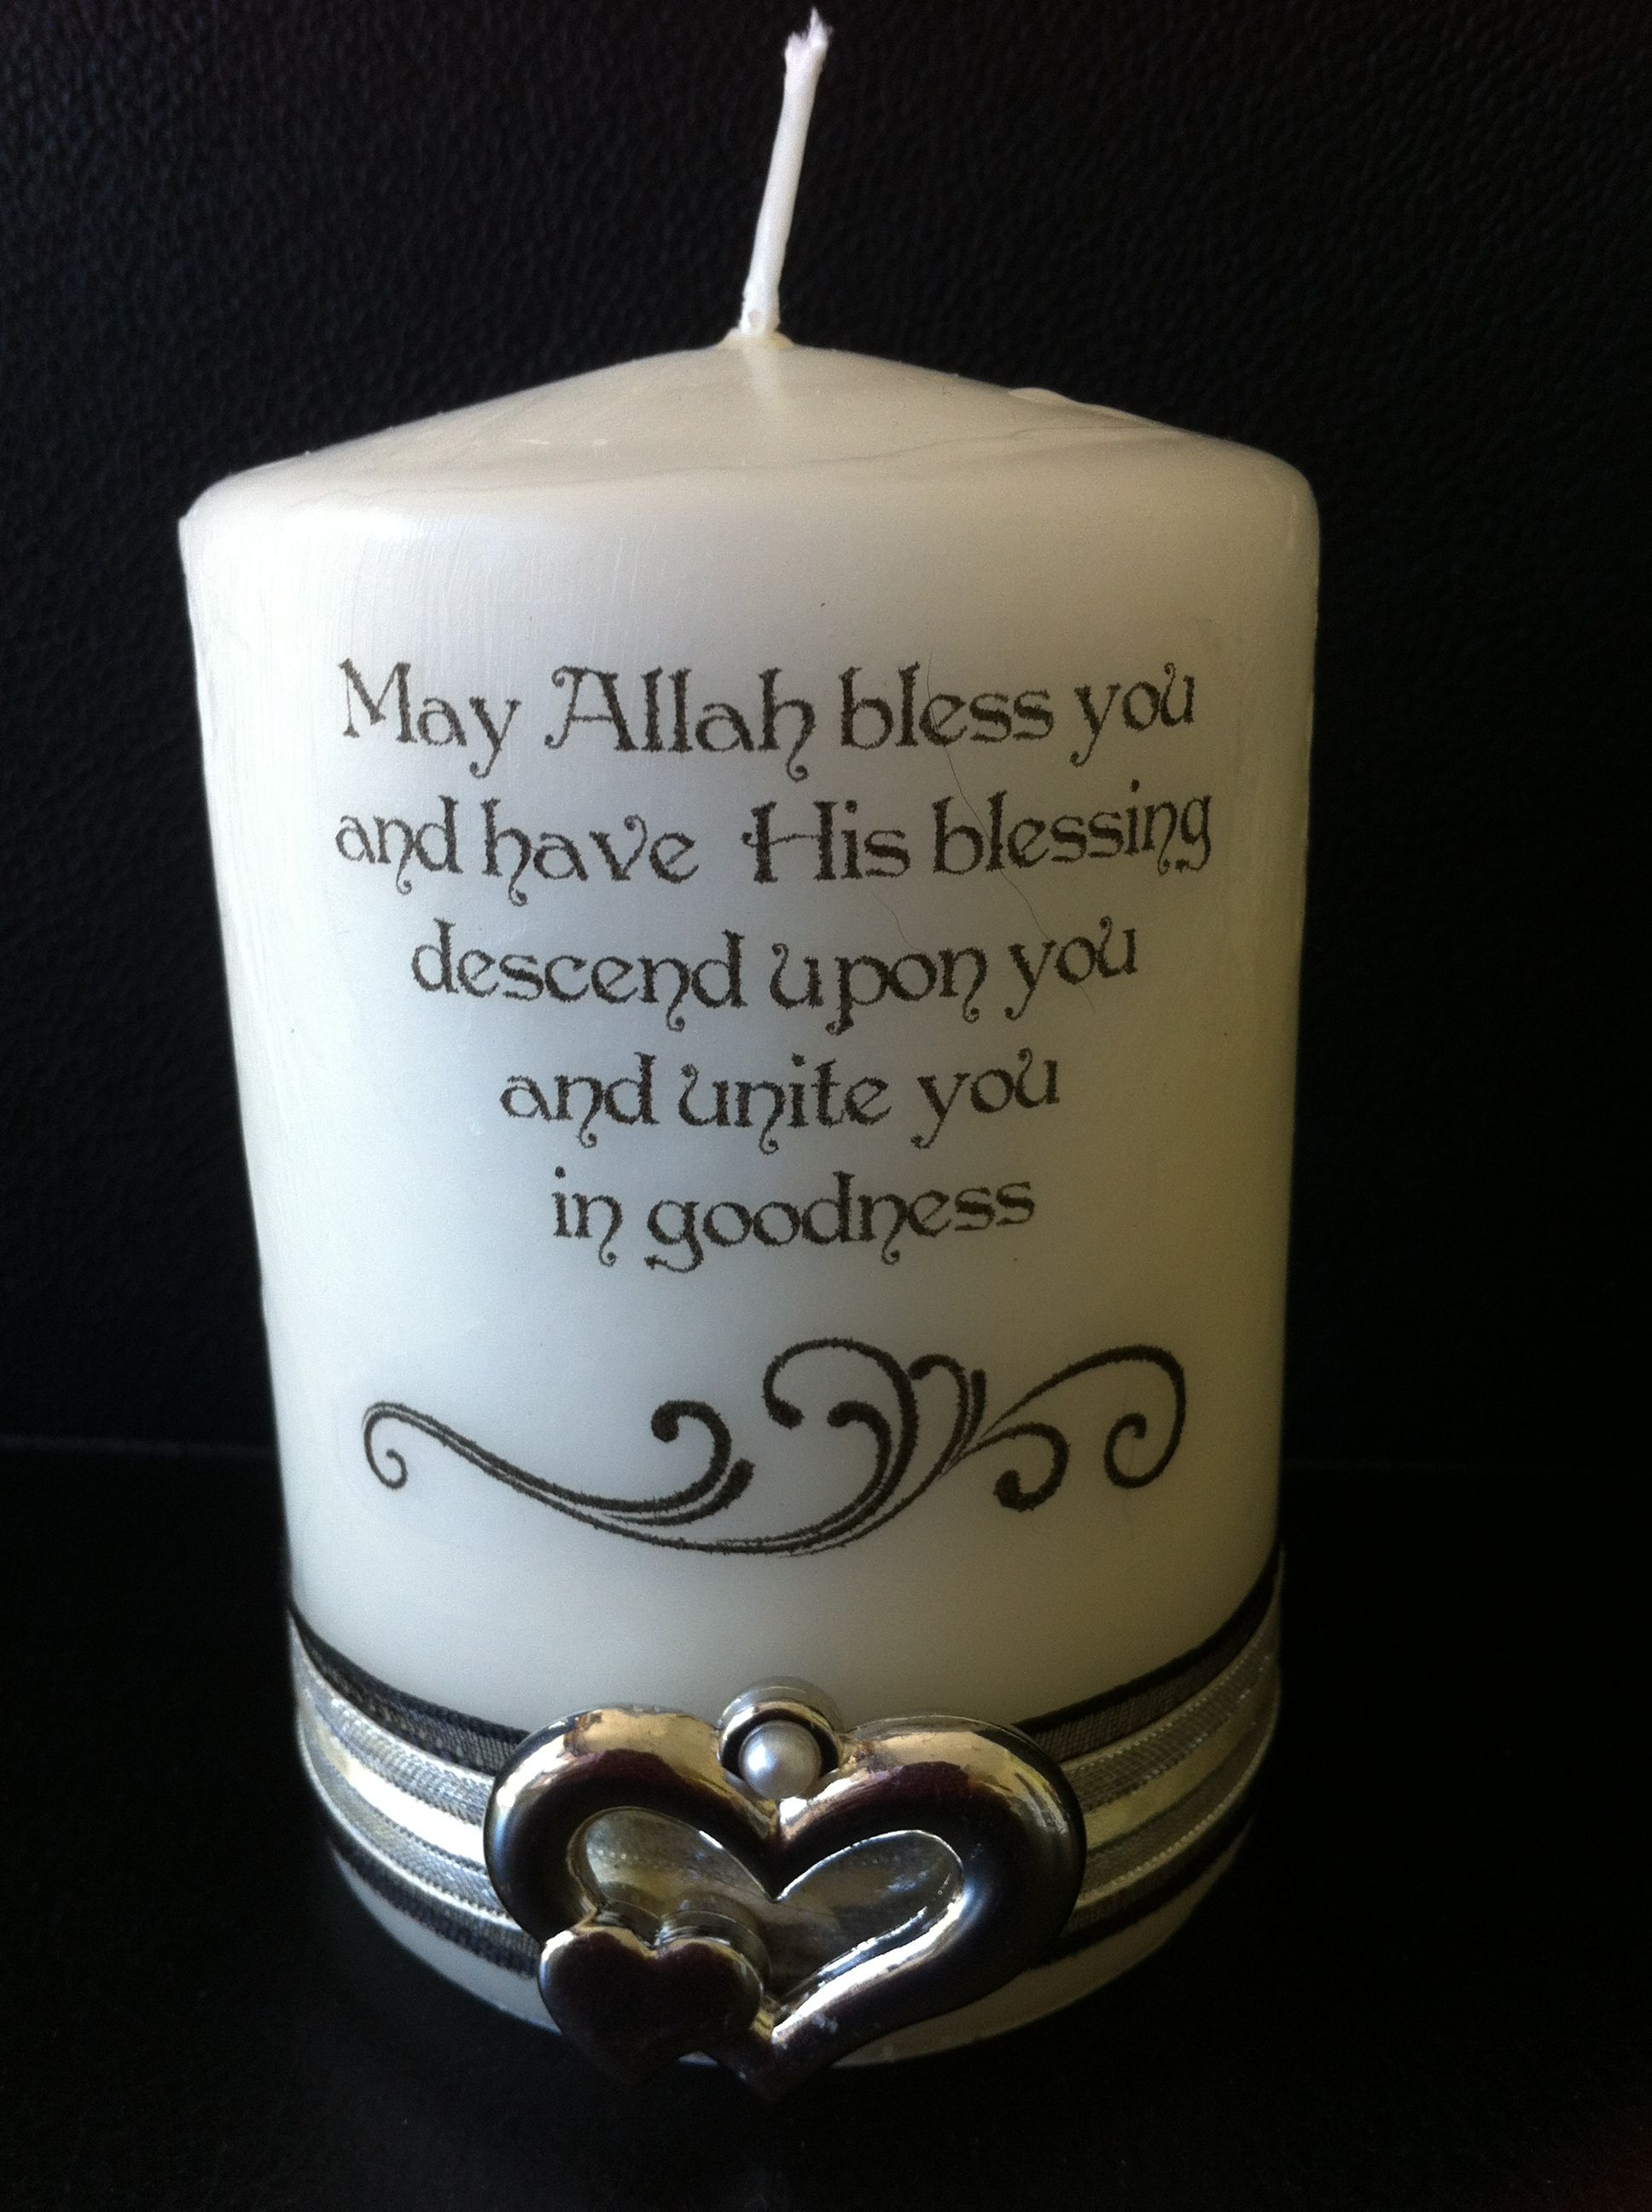 Wedding Gift For Muslim Bride : muslim dress egyptian wedding henna candles muslim couples unity ...